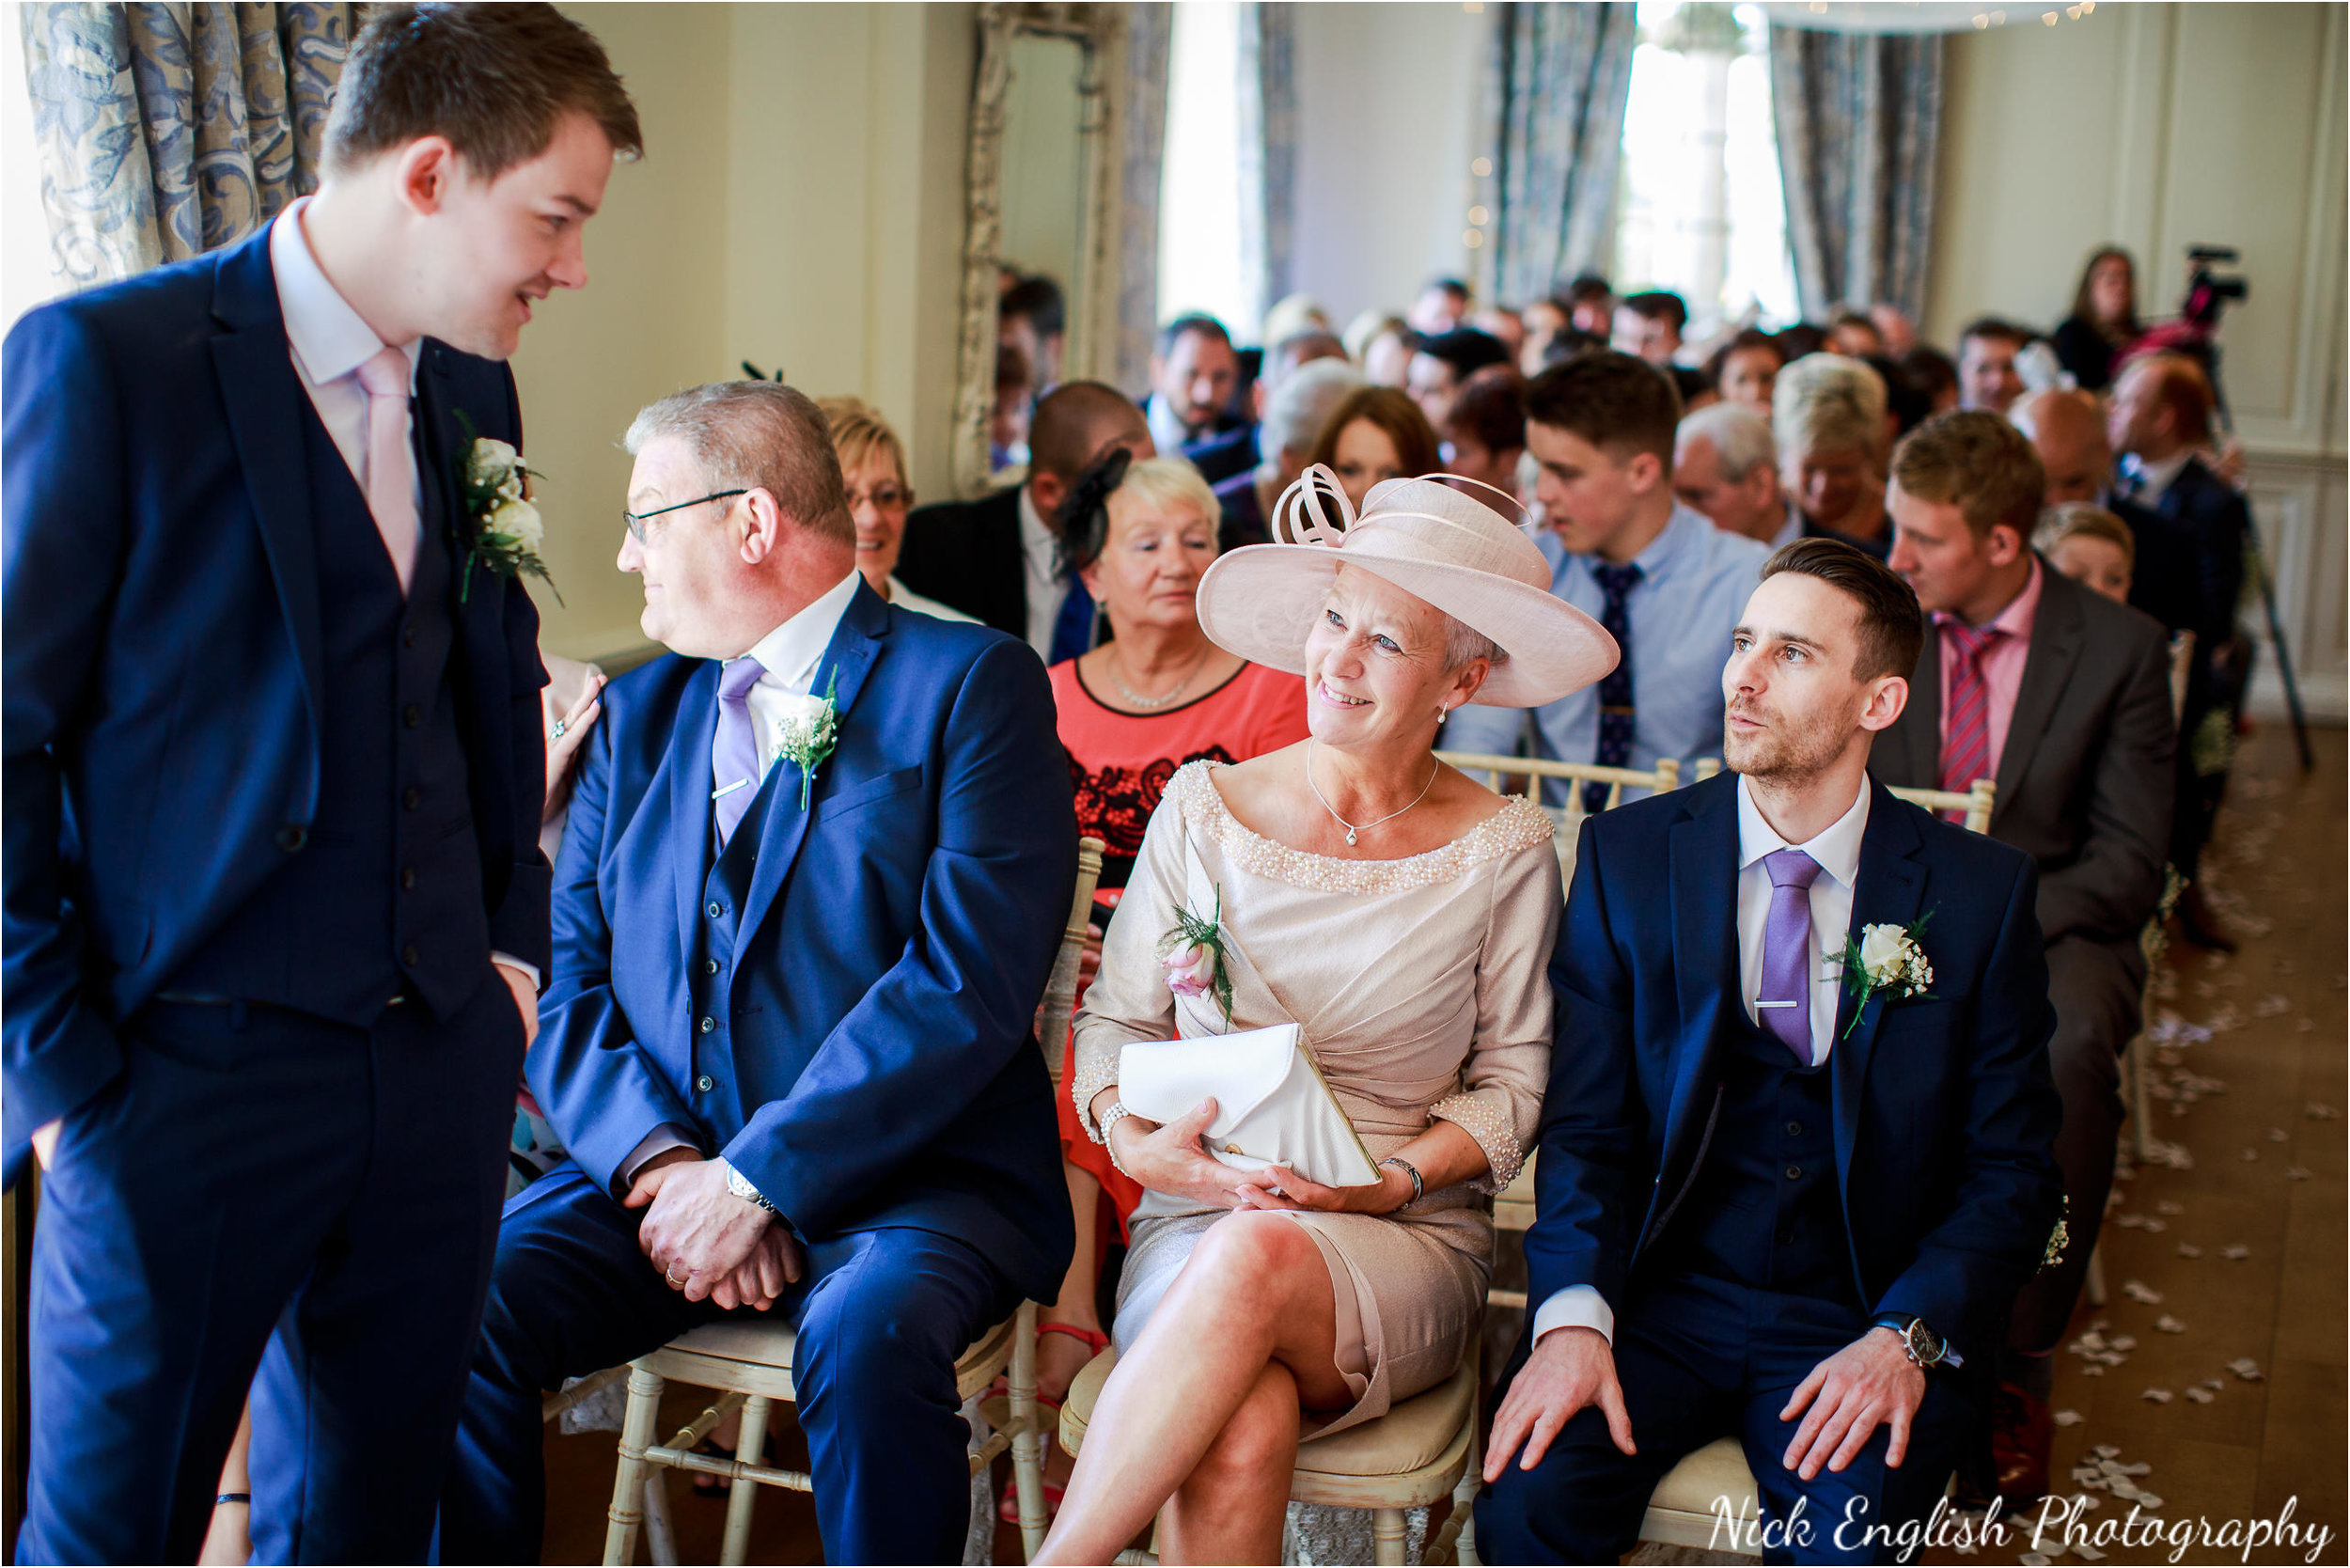 Alison James Wedding Photographs at Eaves Hall West Bradford 90jpg.jpeg